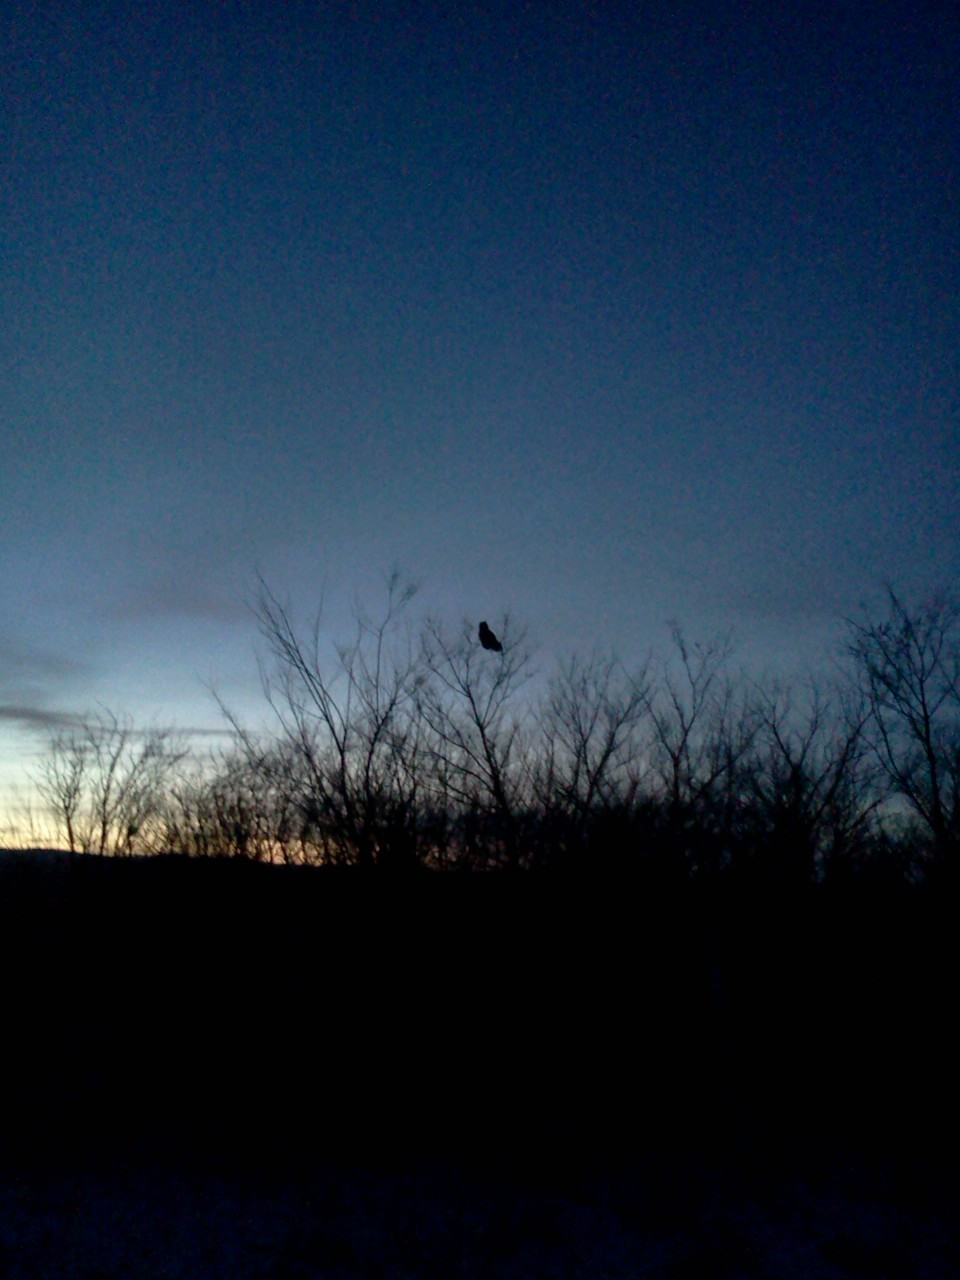 And my evening view! I've seen like 30 owls this week and this is the best picture I've managed to get.